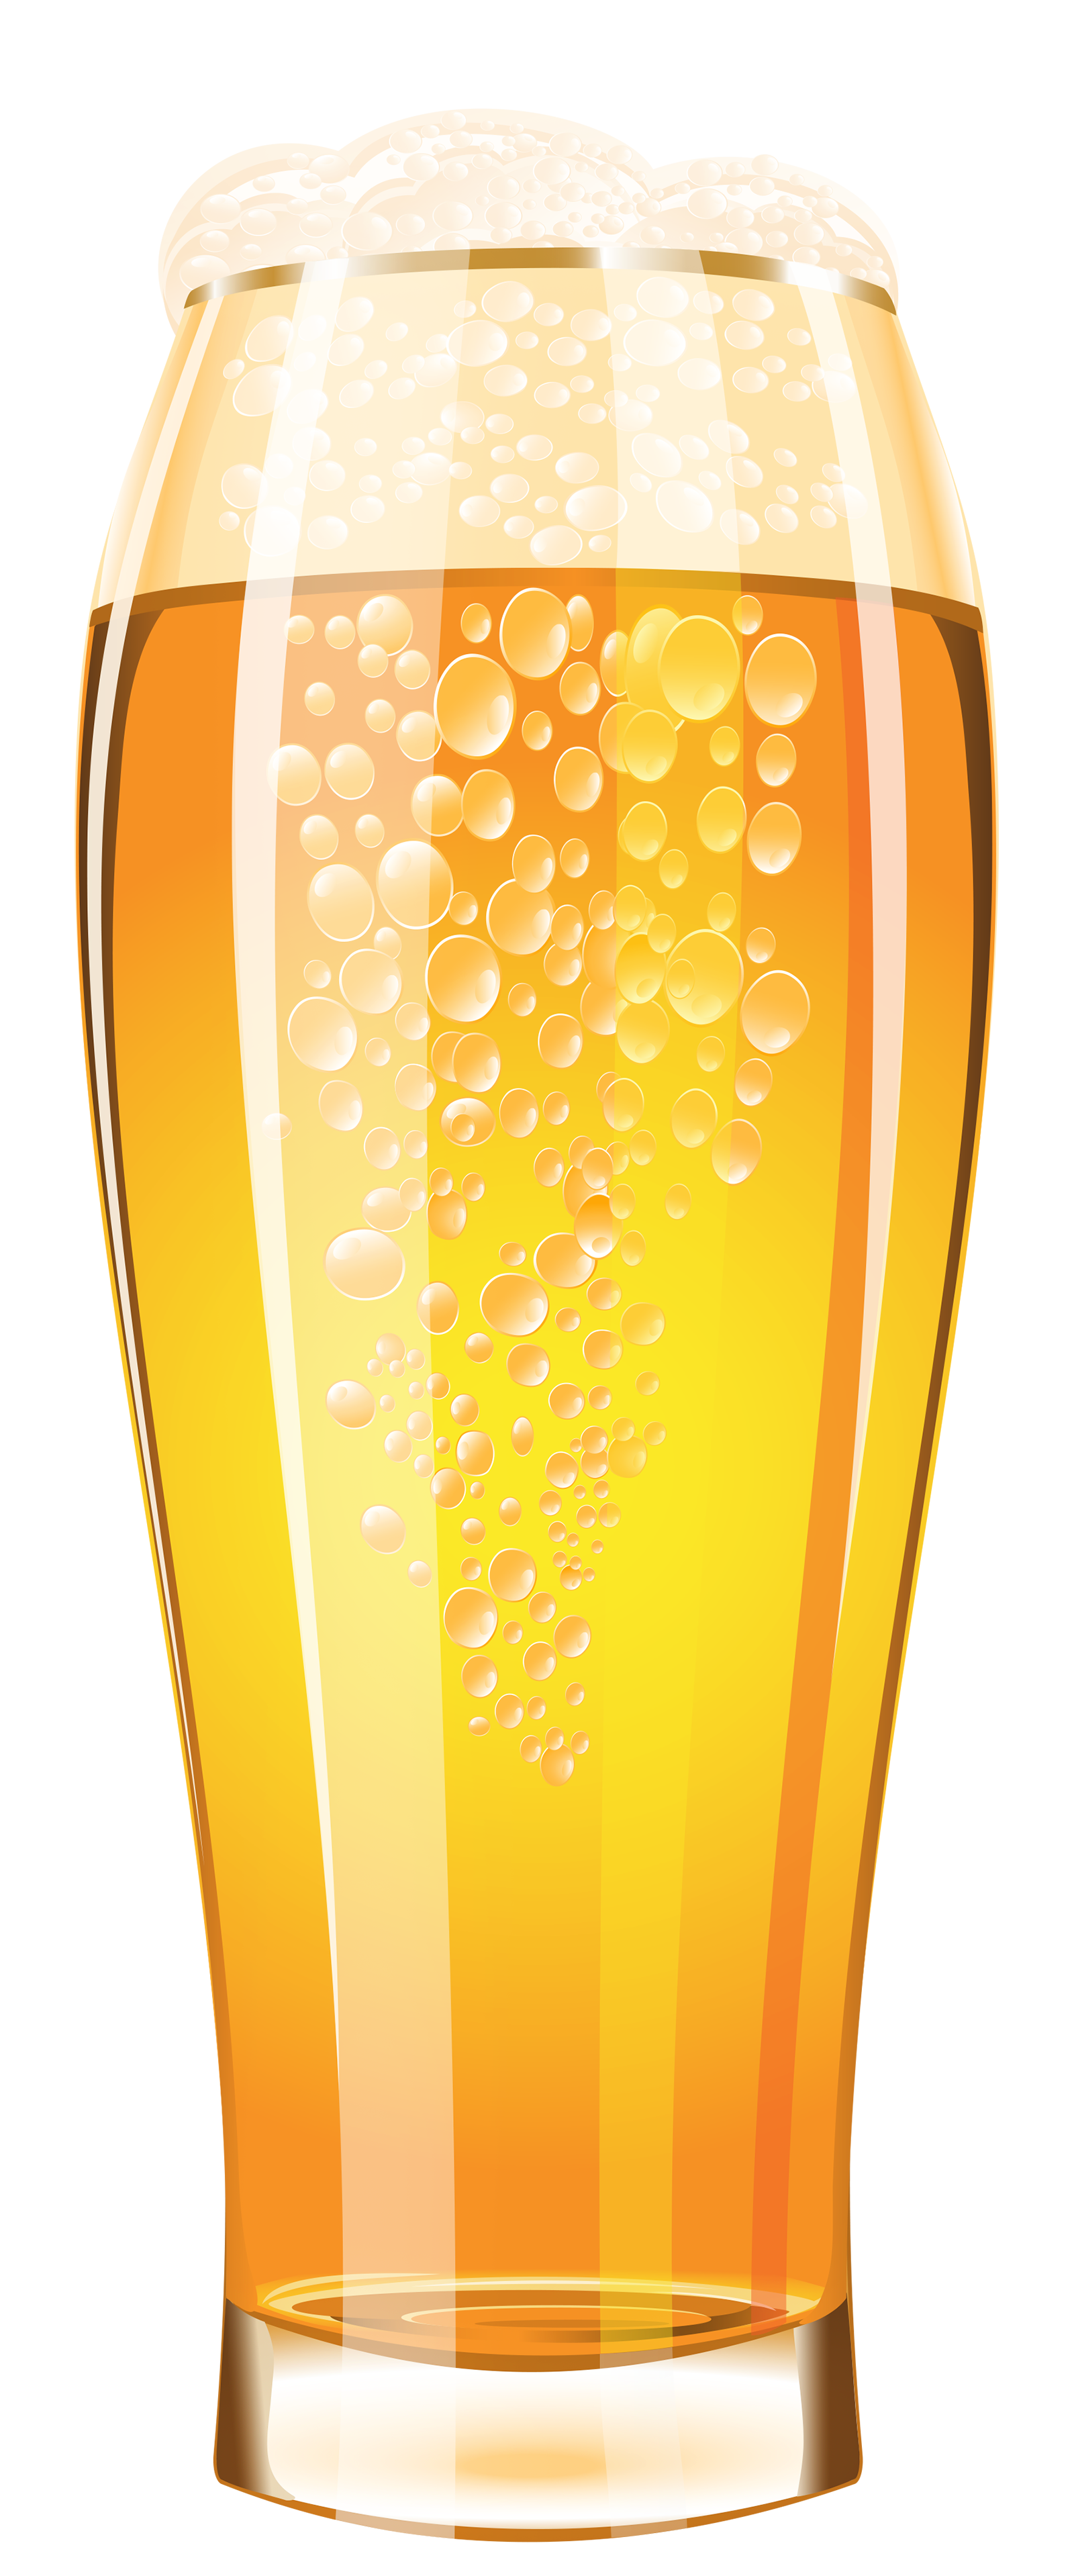 Transparent beer glass vector. Of png clipart image